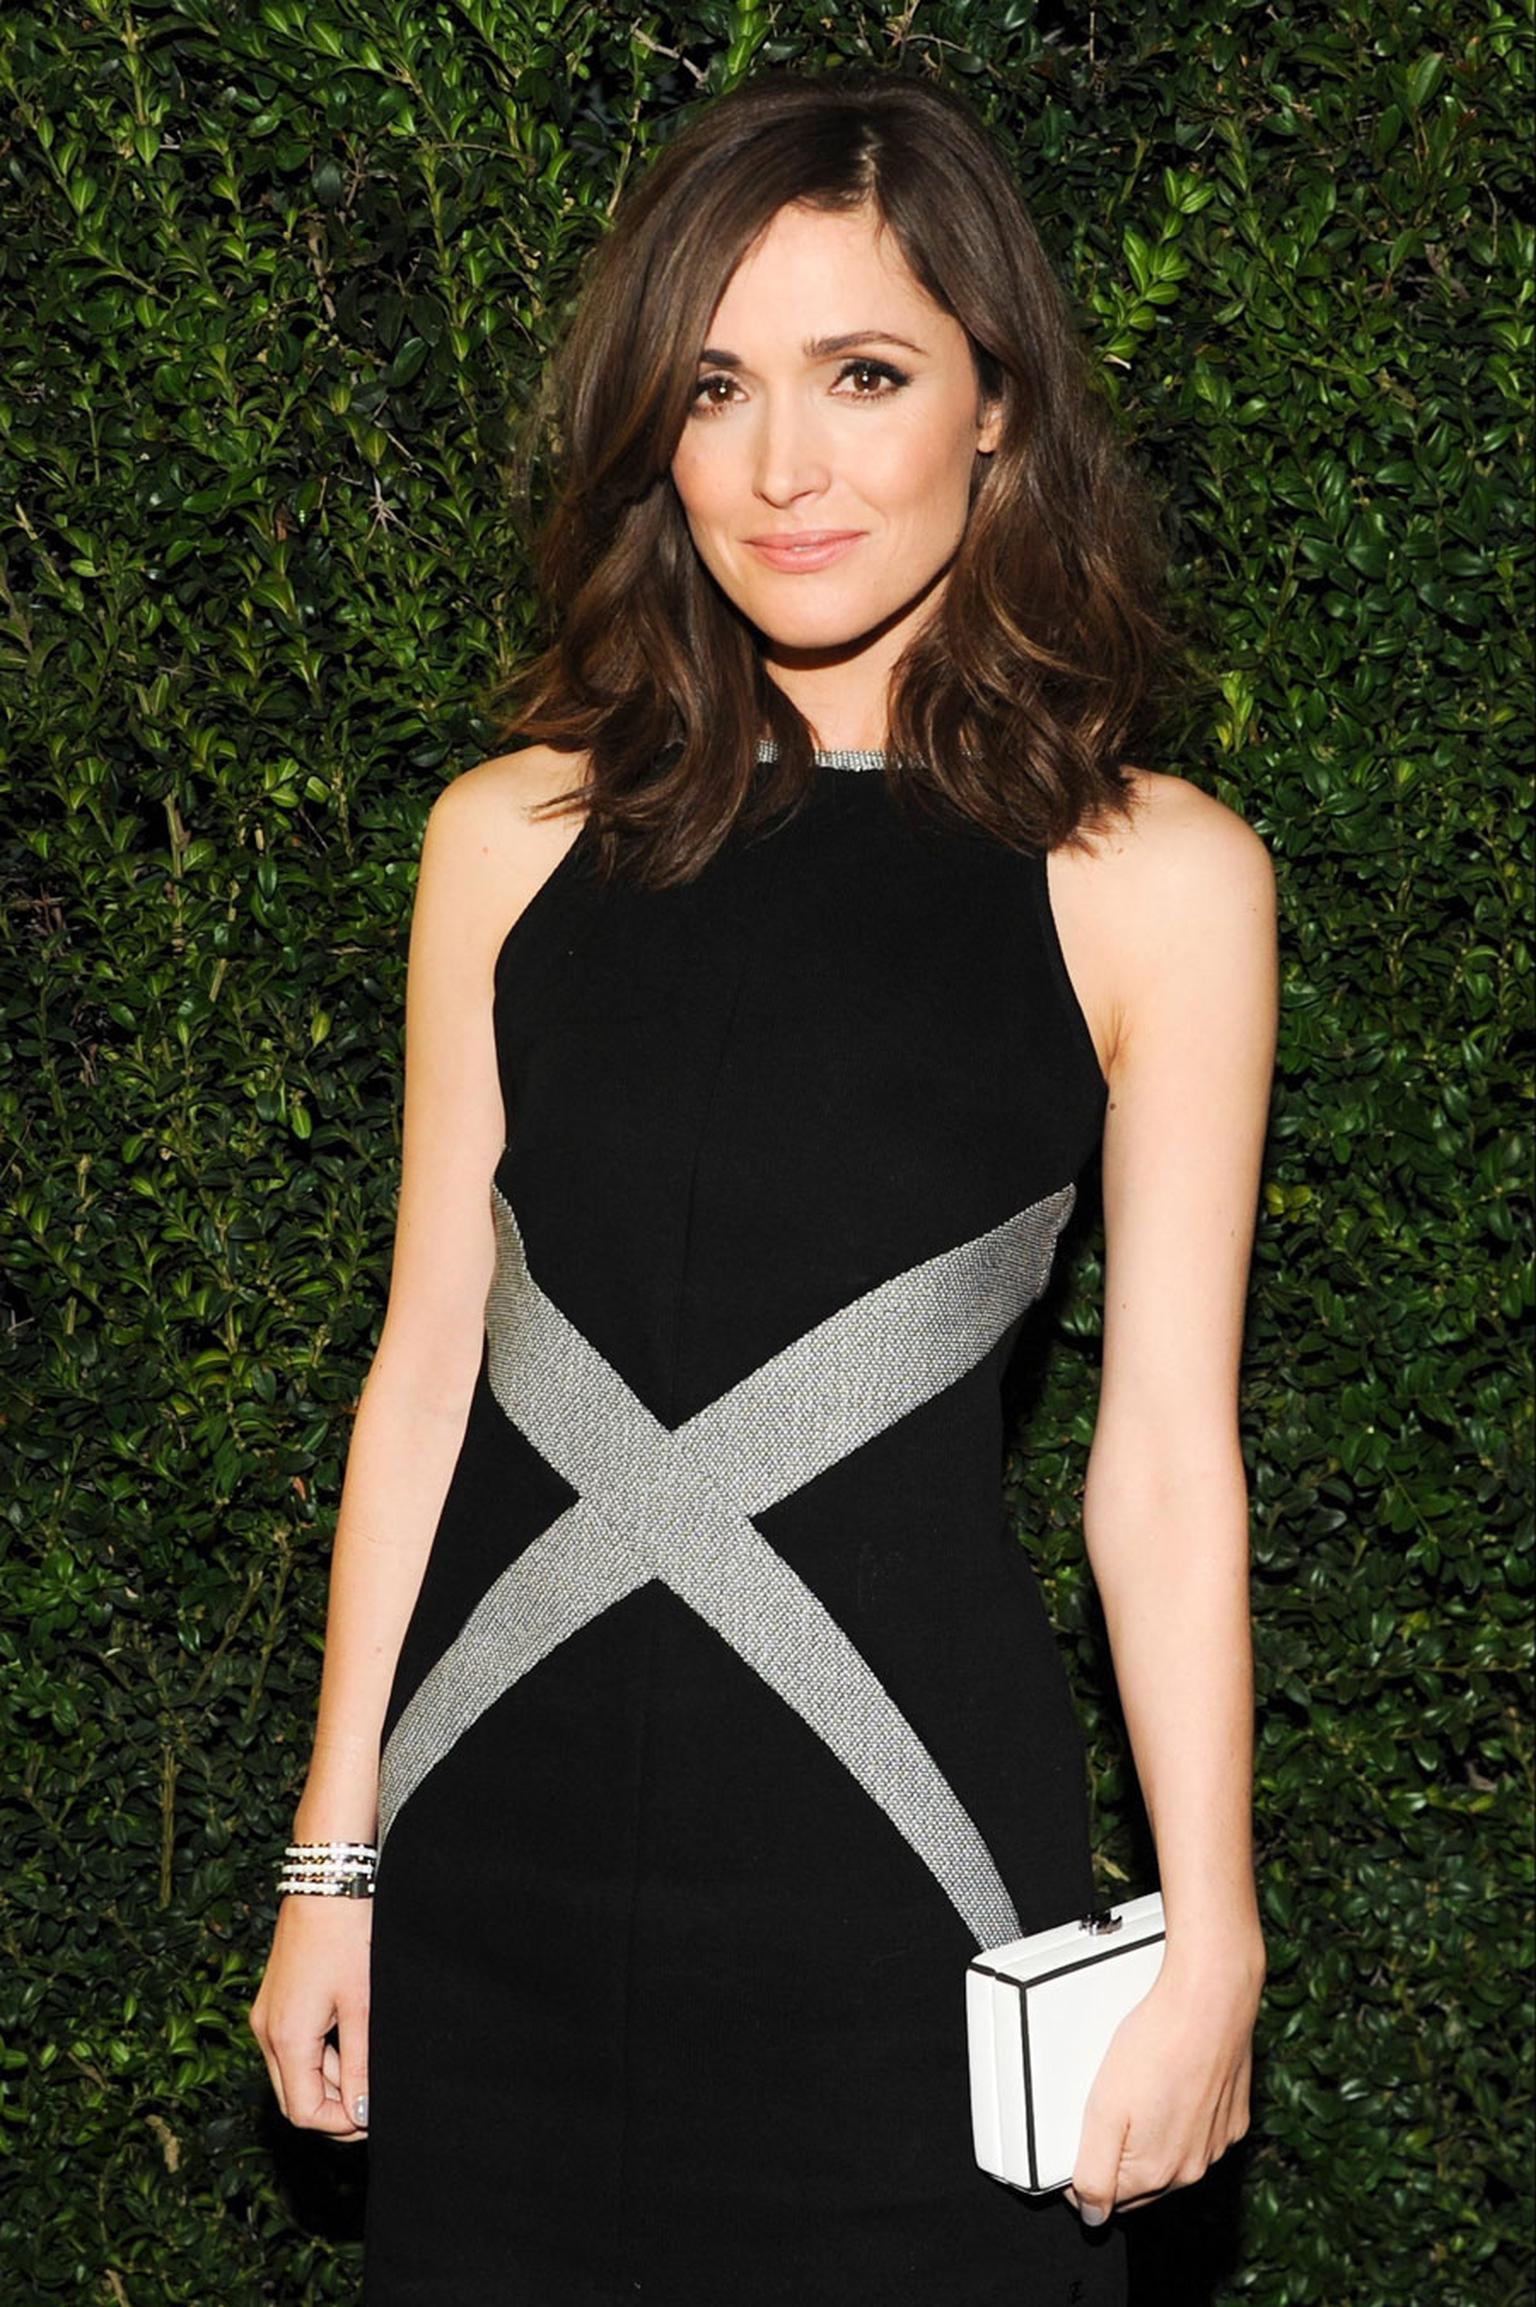 Rose-Byrne-Chanel-and-Charles-Finch-Oscars-Dinner-23-february-2013.jpg